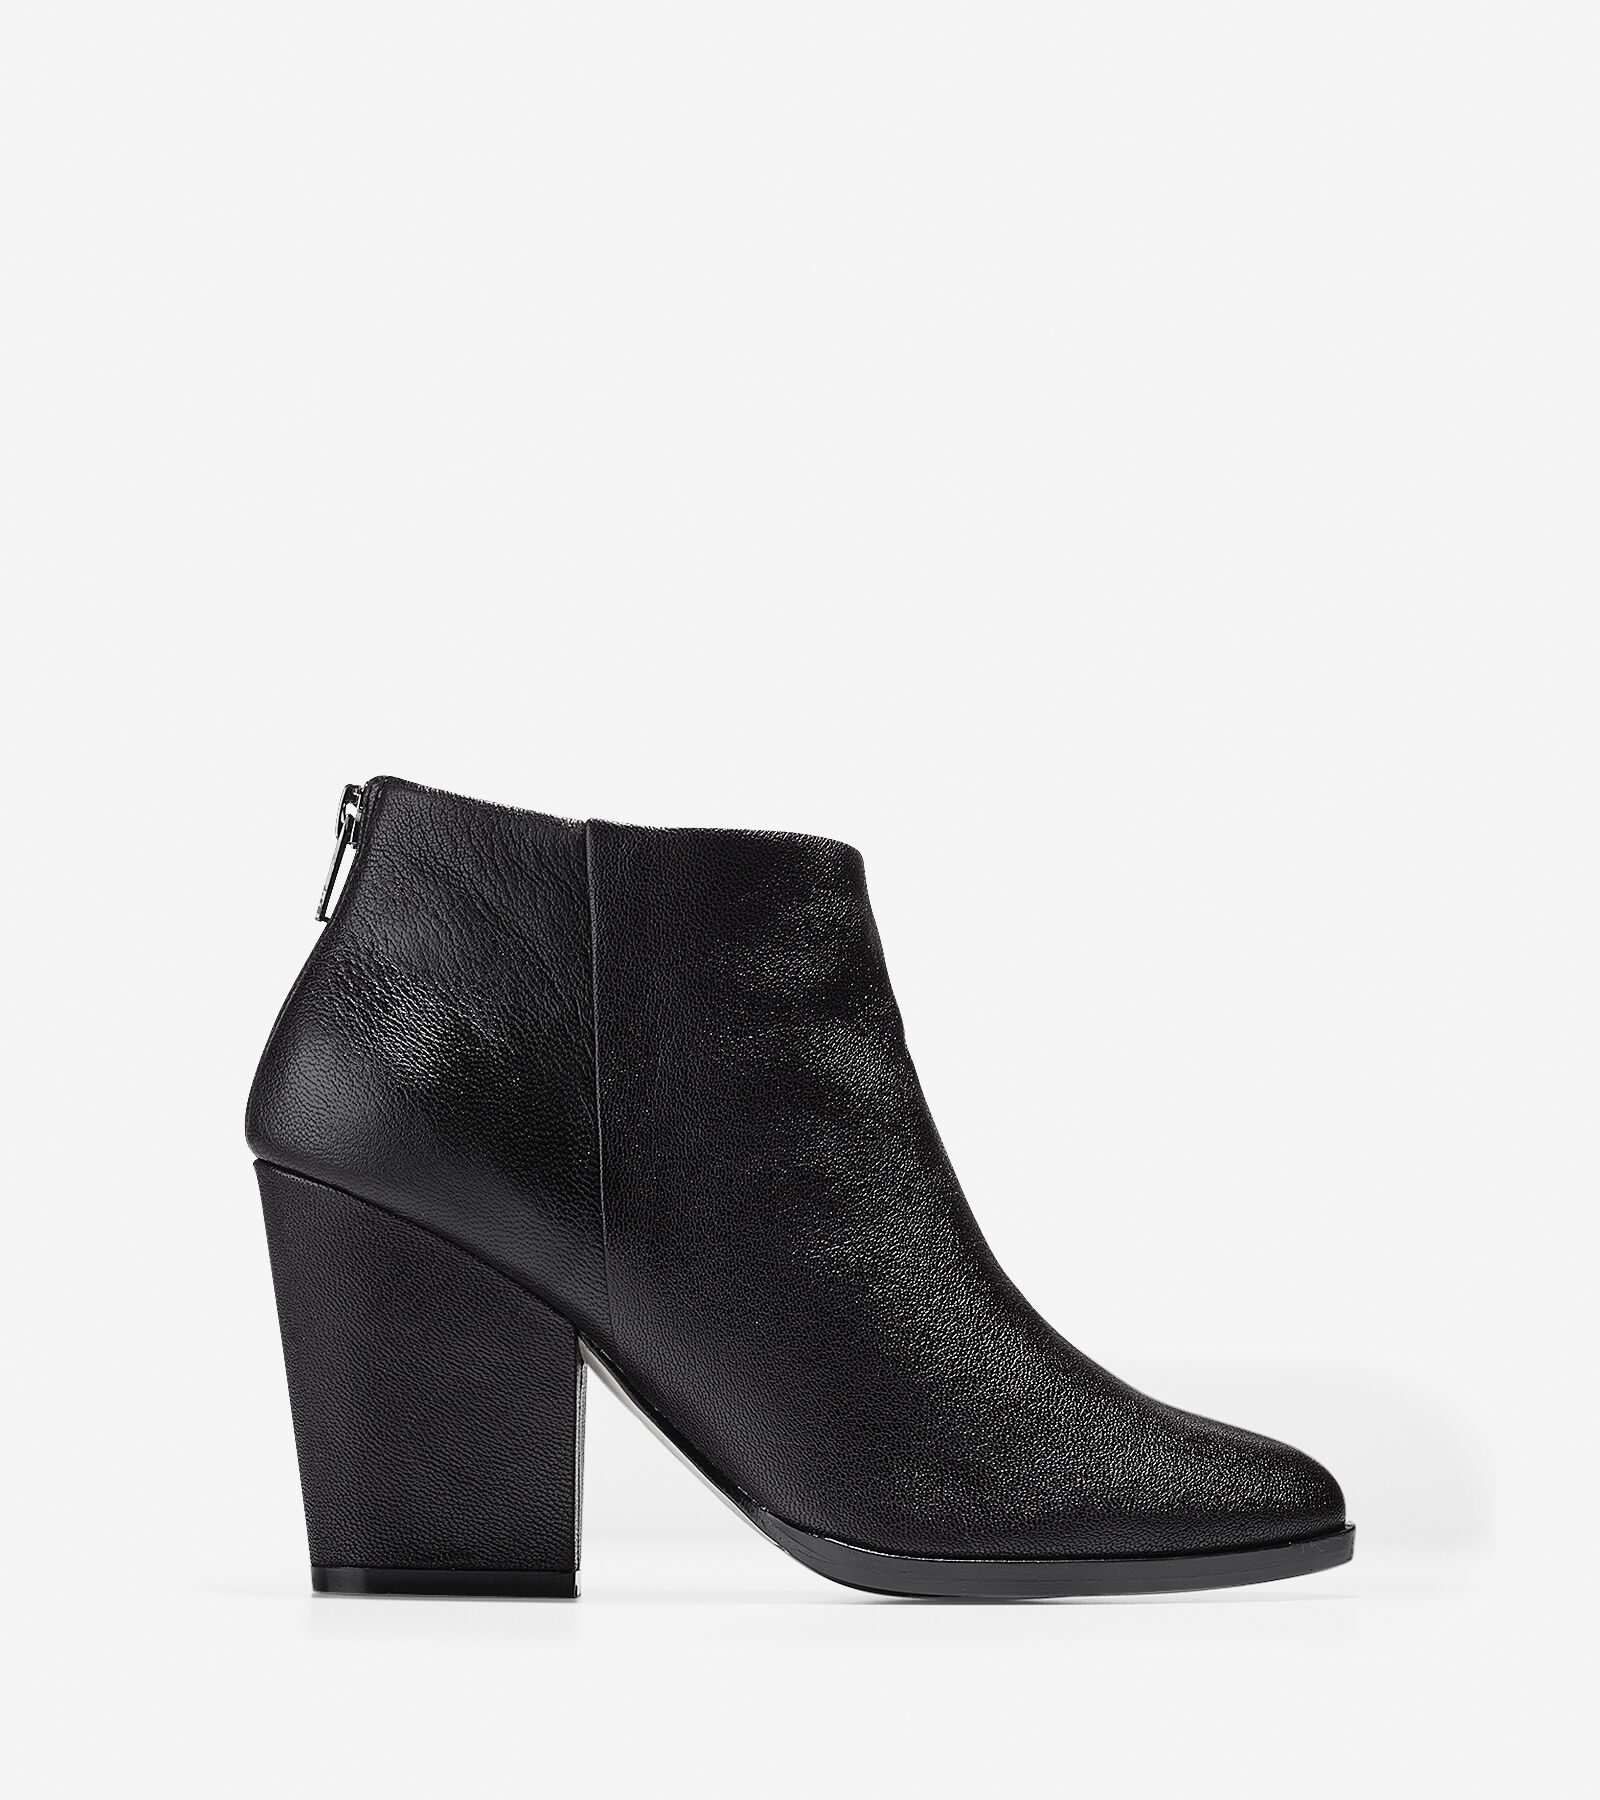 Damenschuhe Dey Booties Cole (85mm) in schwarz Leder   Cole Booties Haan f198d1